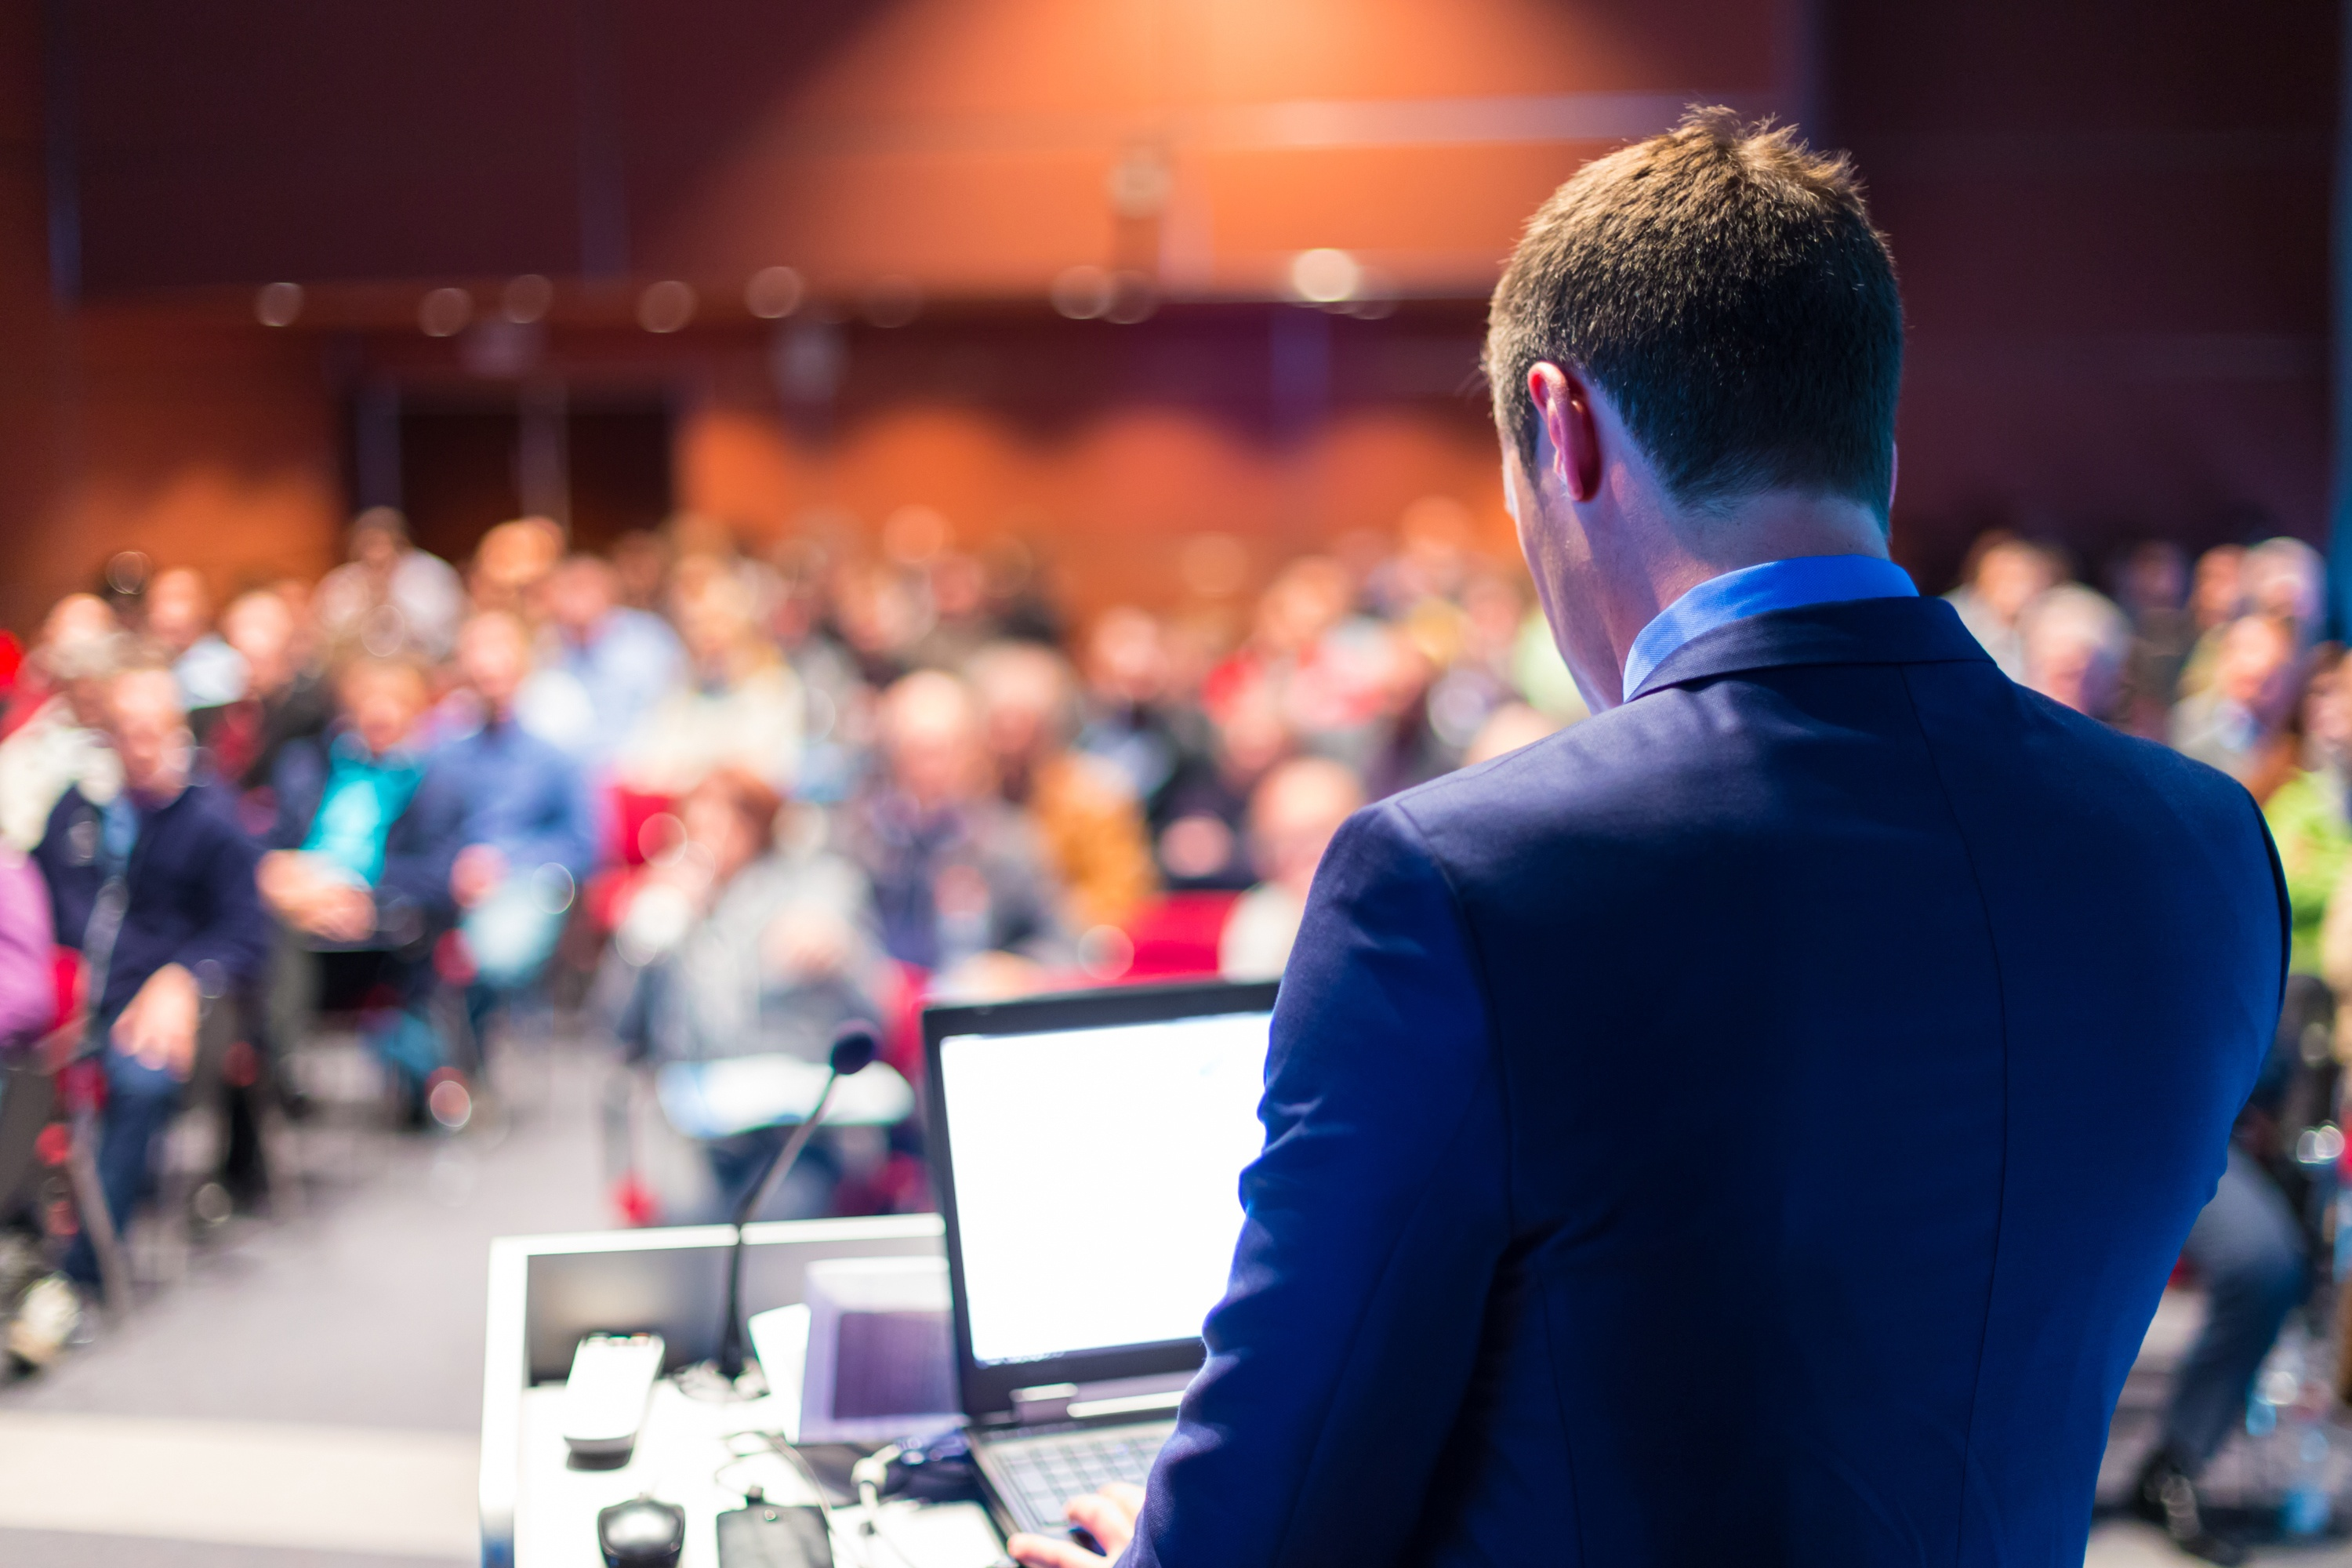 Your_content_marketing_strategy_should_include_securing_a_speaking_role_at_a_conference.jpg